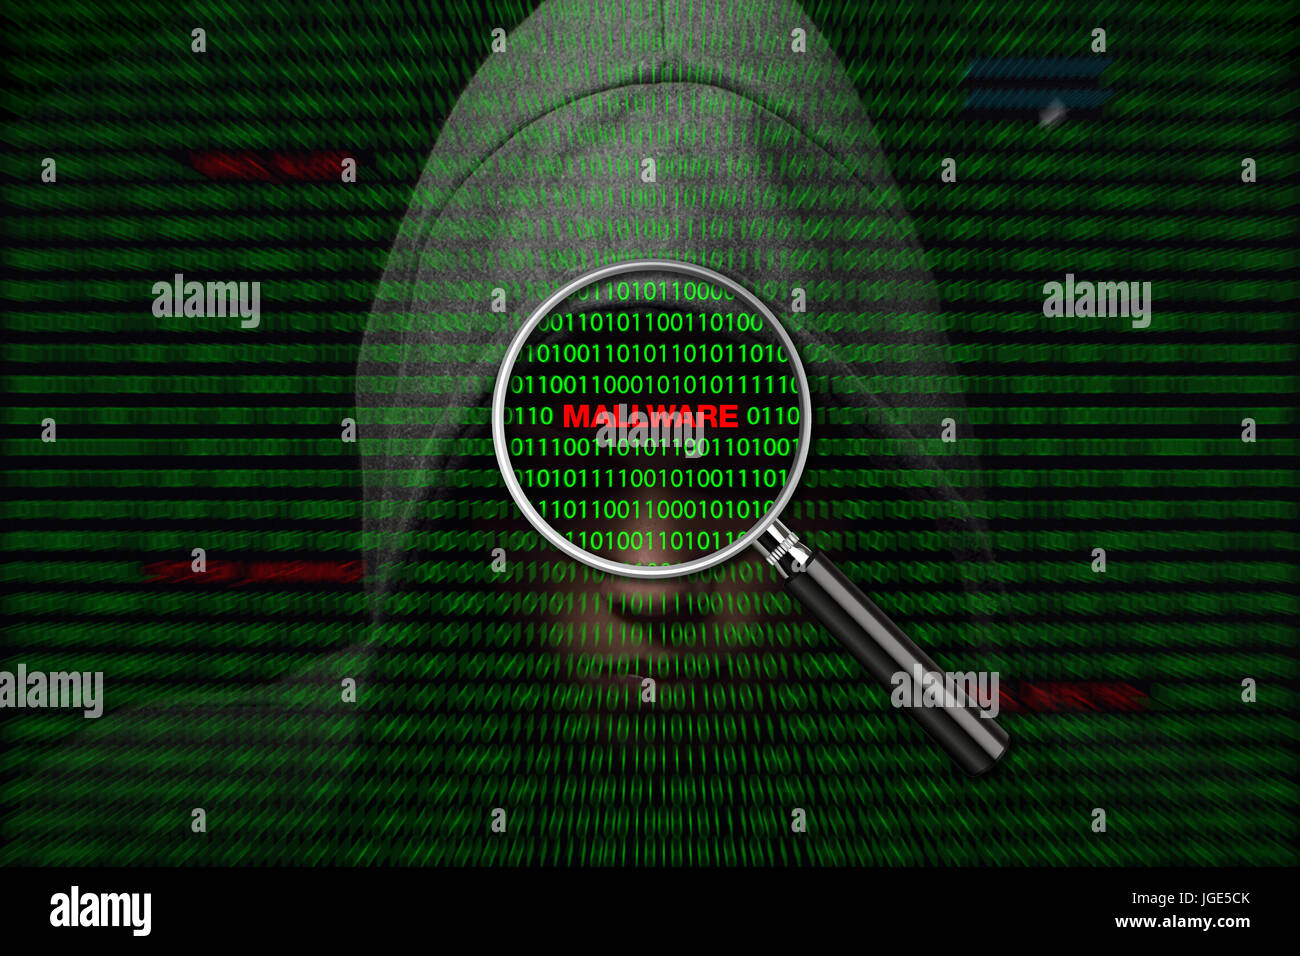 Hacker over a screen with binary code and mallware warning messages - Stock Image